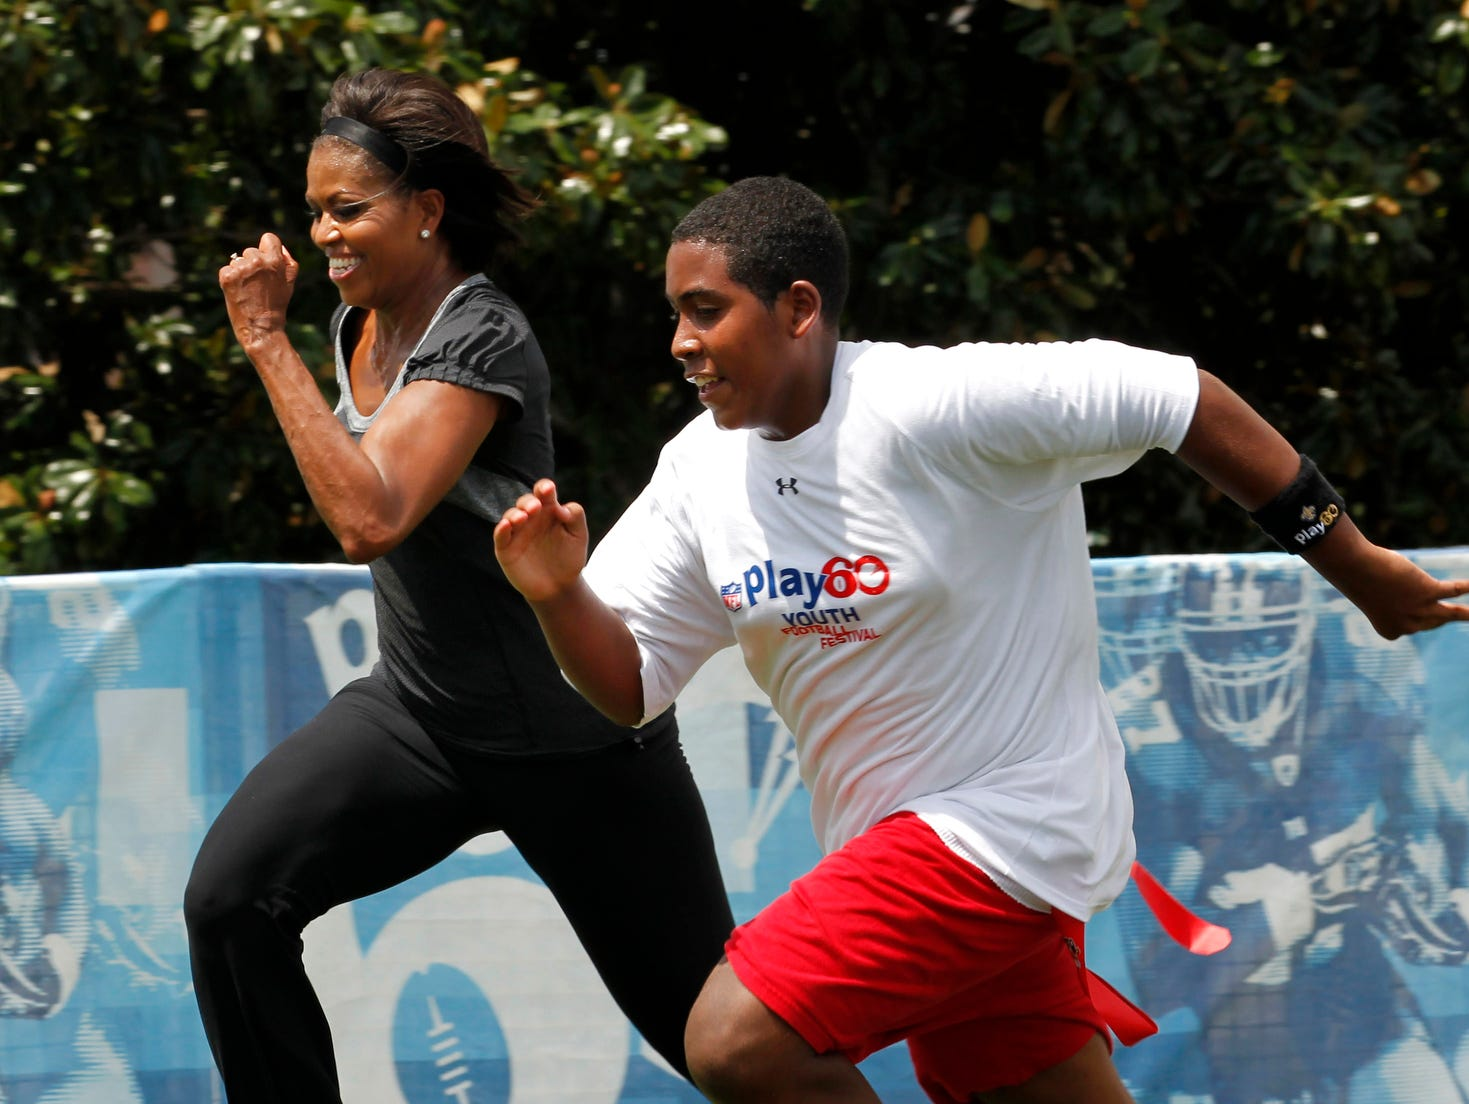 """FILE - In this Sept. 8, 2010, file photo, first lady Michelle Obama runs a 40-yard sprint as she participates in the Let's Move!  Campaign and the NFL's Play 60 Campaign festivities with area youth, to promote exercise and fight childhood obesity in New Orleans. Michelle Obama has a new look, both in person and online, and with the president's re-election, she has four more years as first lady, too. The first lady is trying to figure out what comes next for this self-described """"mom in chief"""" who also is a champion of healthier eating, an advocate for military families, a fitness buff and the best-selling author of a book about her White House garden. For certain, she'll press ahead with her well-publicized efforts to reduce childhood obesity and rally the country around its service members. (AP Photo/Gerald Herbert, file) ORG XMIT: WX111"""